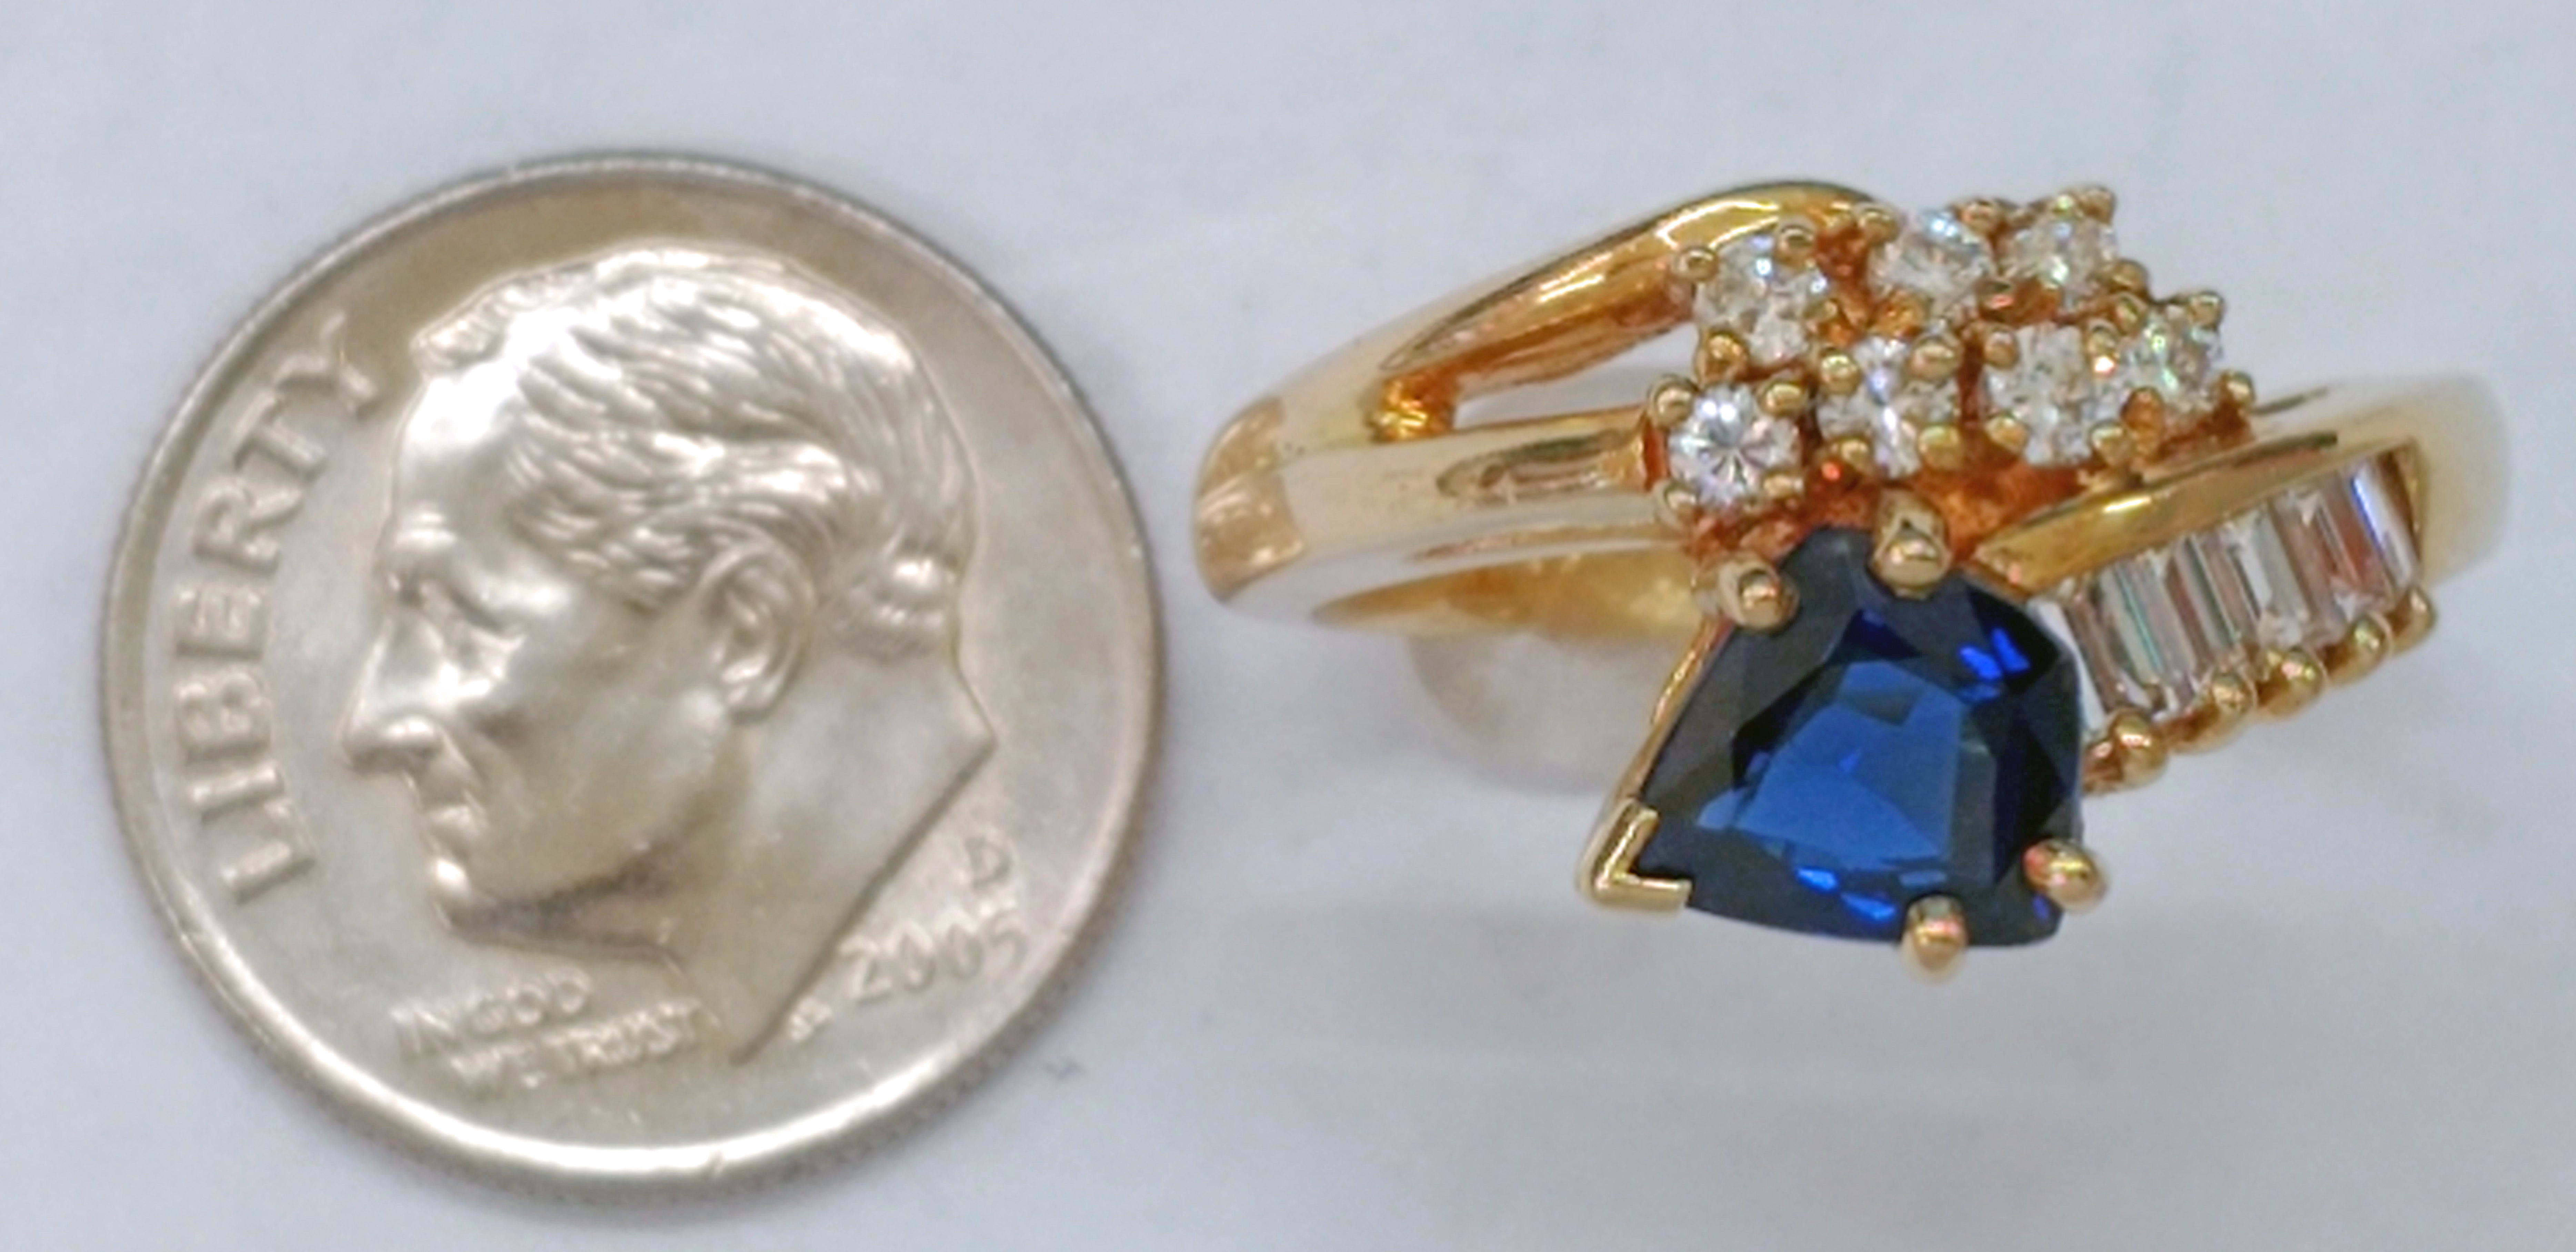 Kite-Shape Blue Sapphire and Diamonds 18kt Yellow Gold Ring - Size 6 1/2